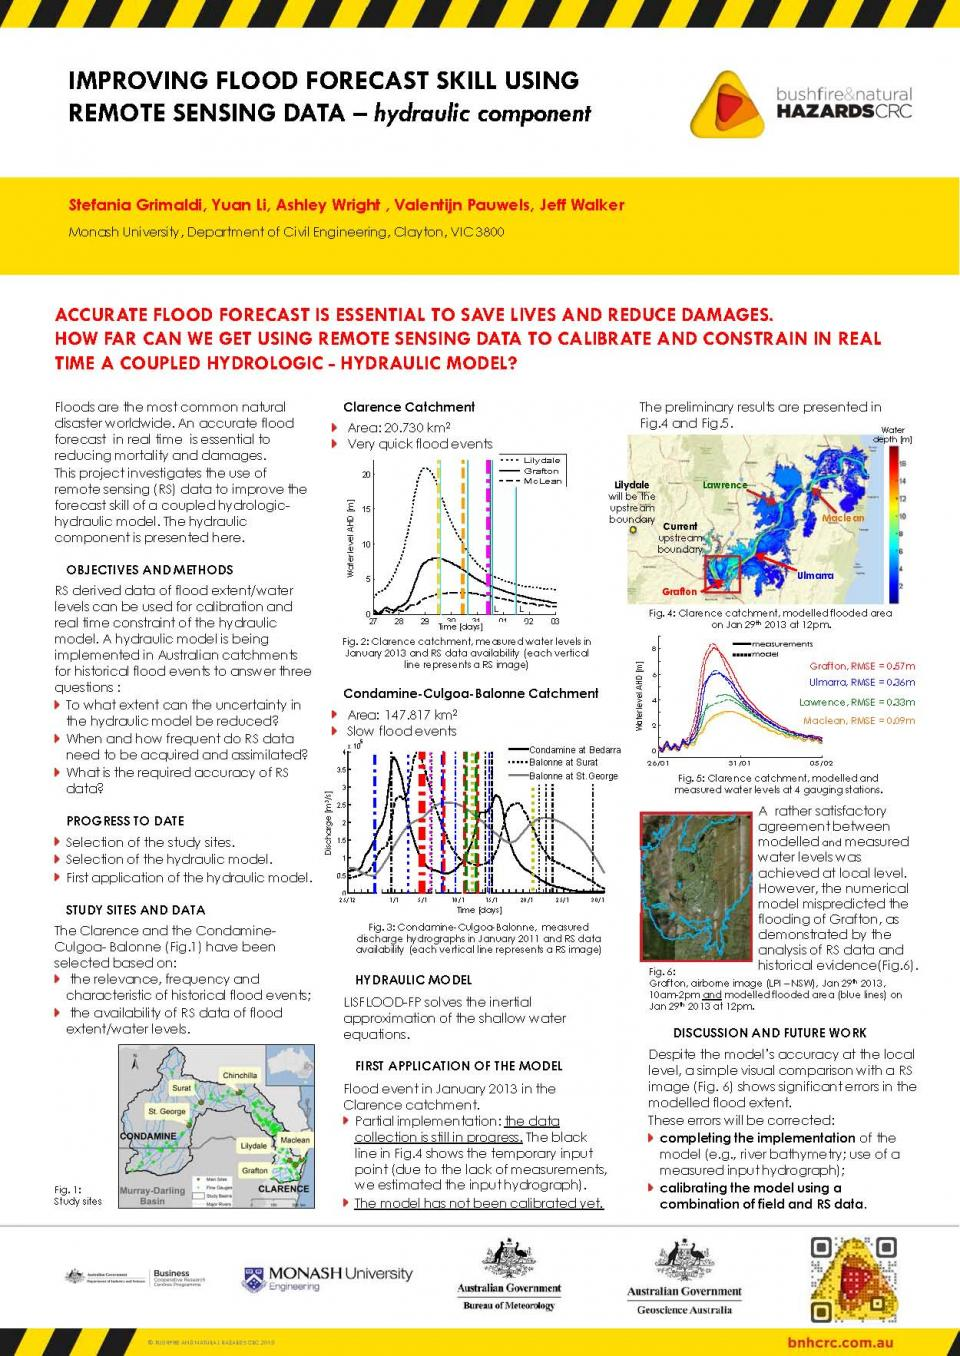 Improving Flood Forecast Skill Using Remote Sensing Data - Hydraulic Component